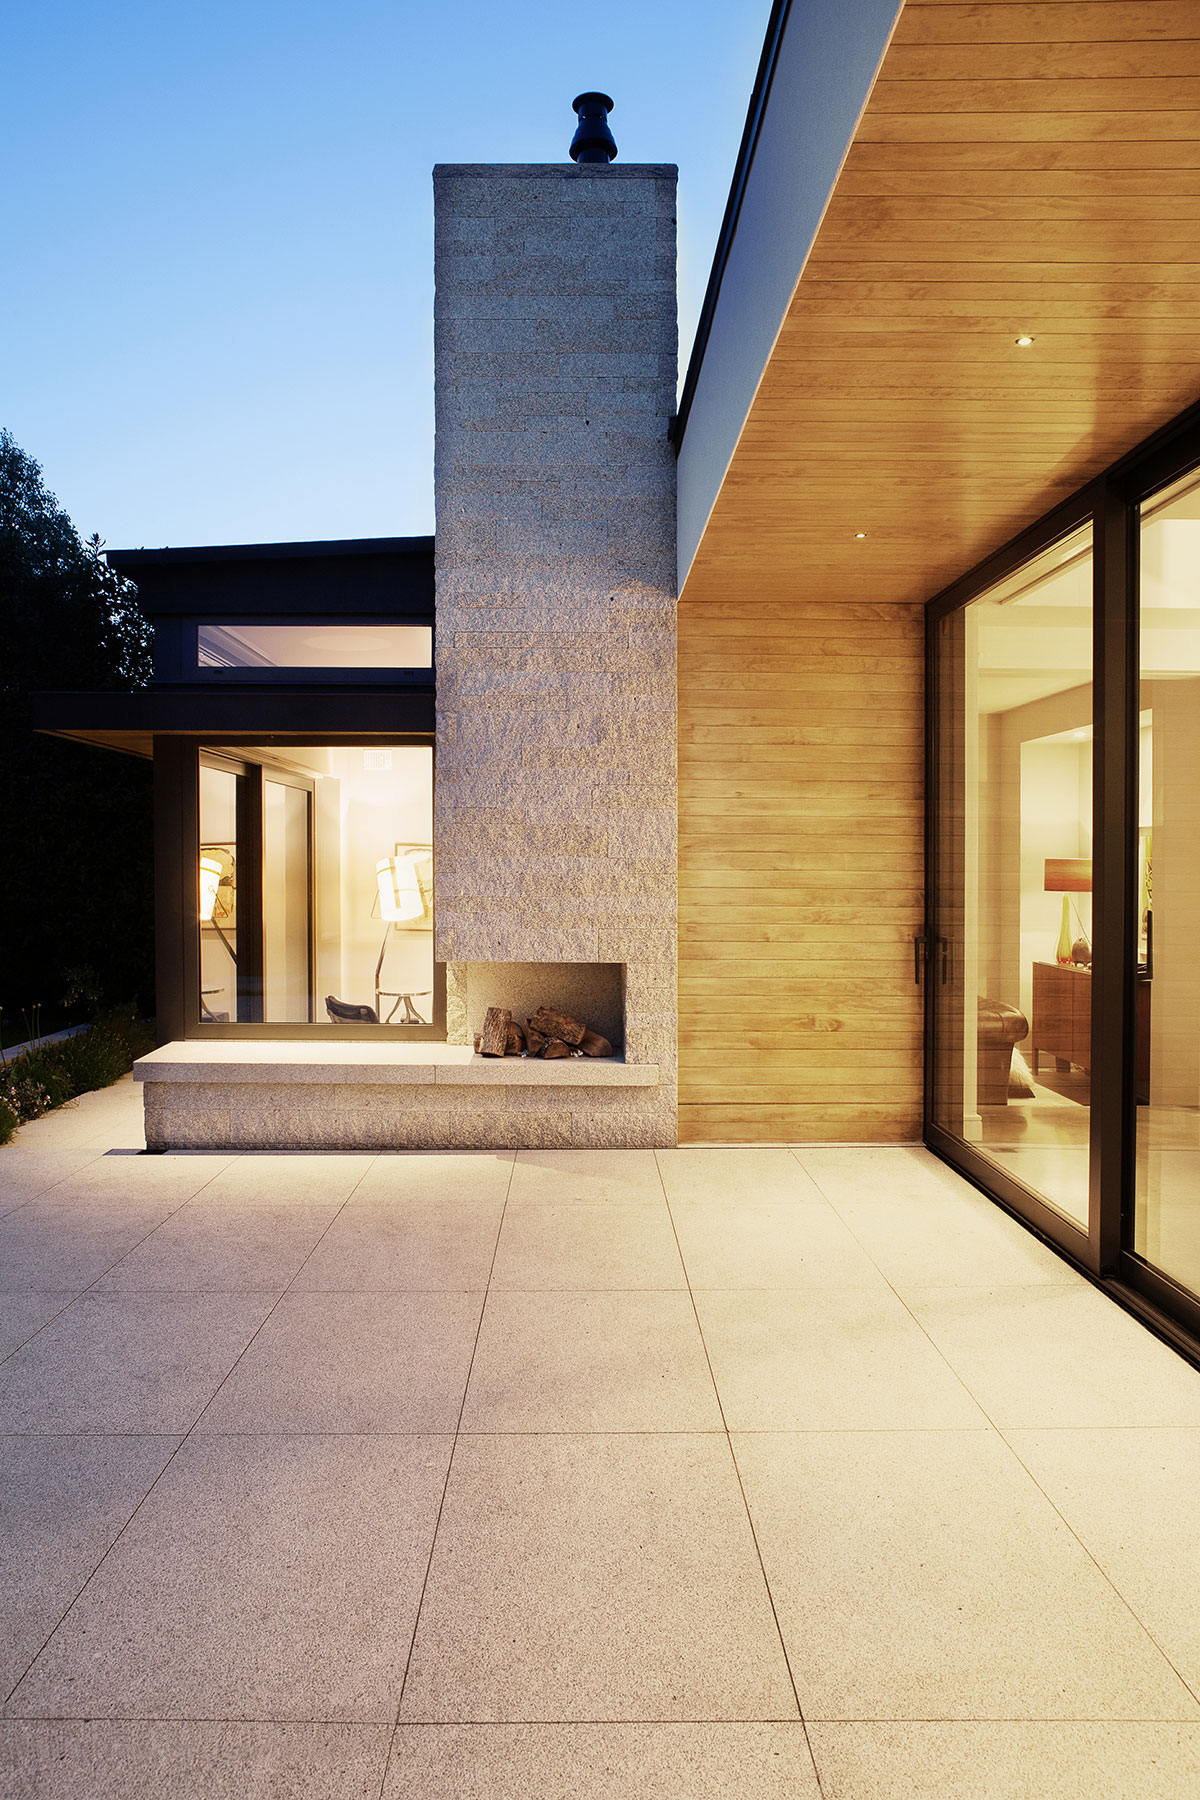 DMVF Architects Brand Photography: Exterior image by Ruth Maria Murphy